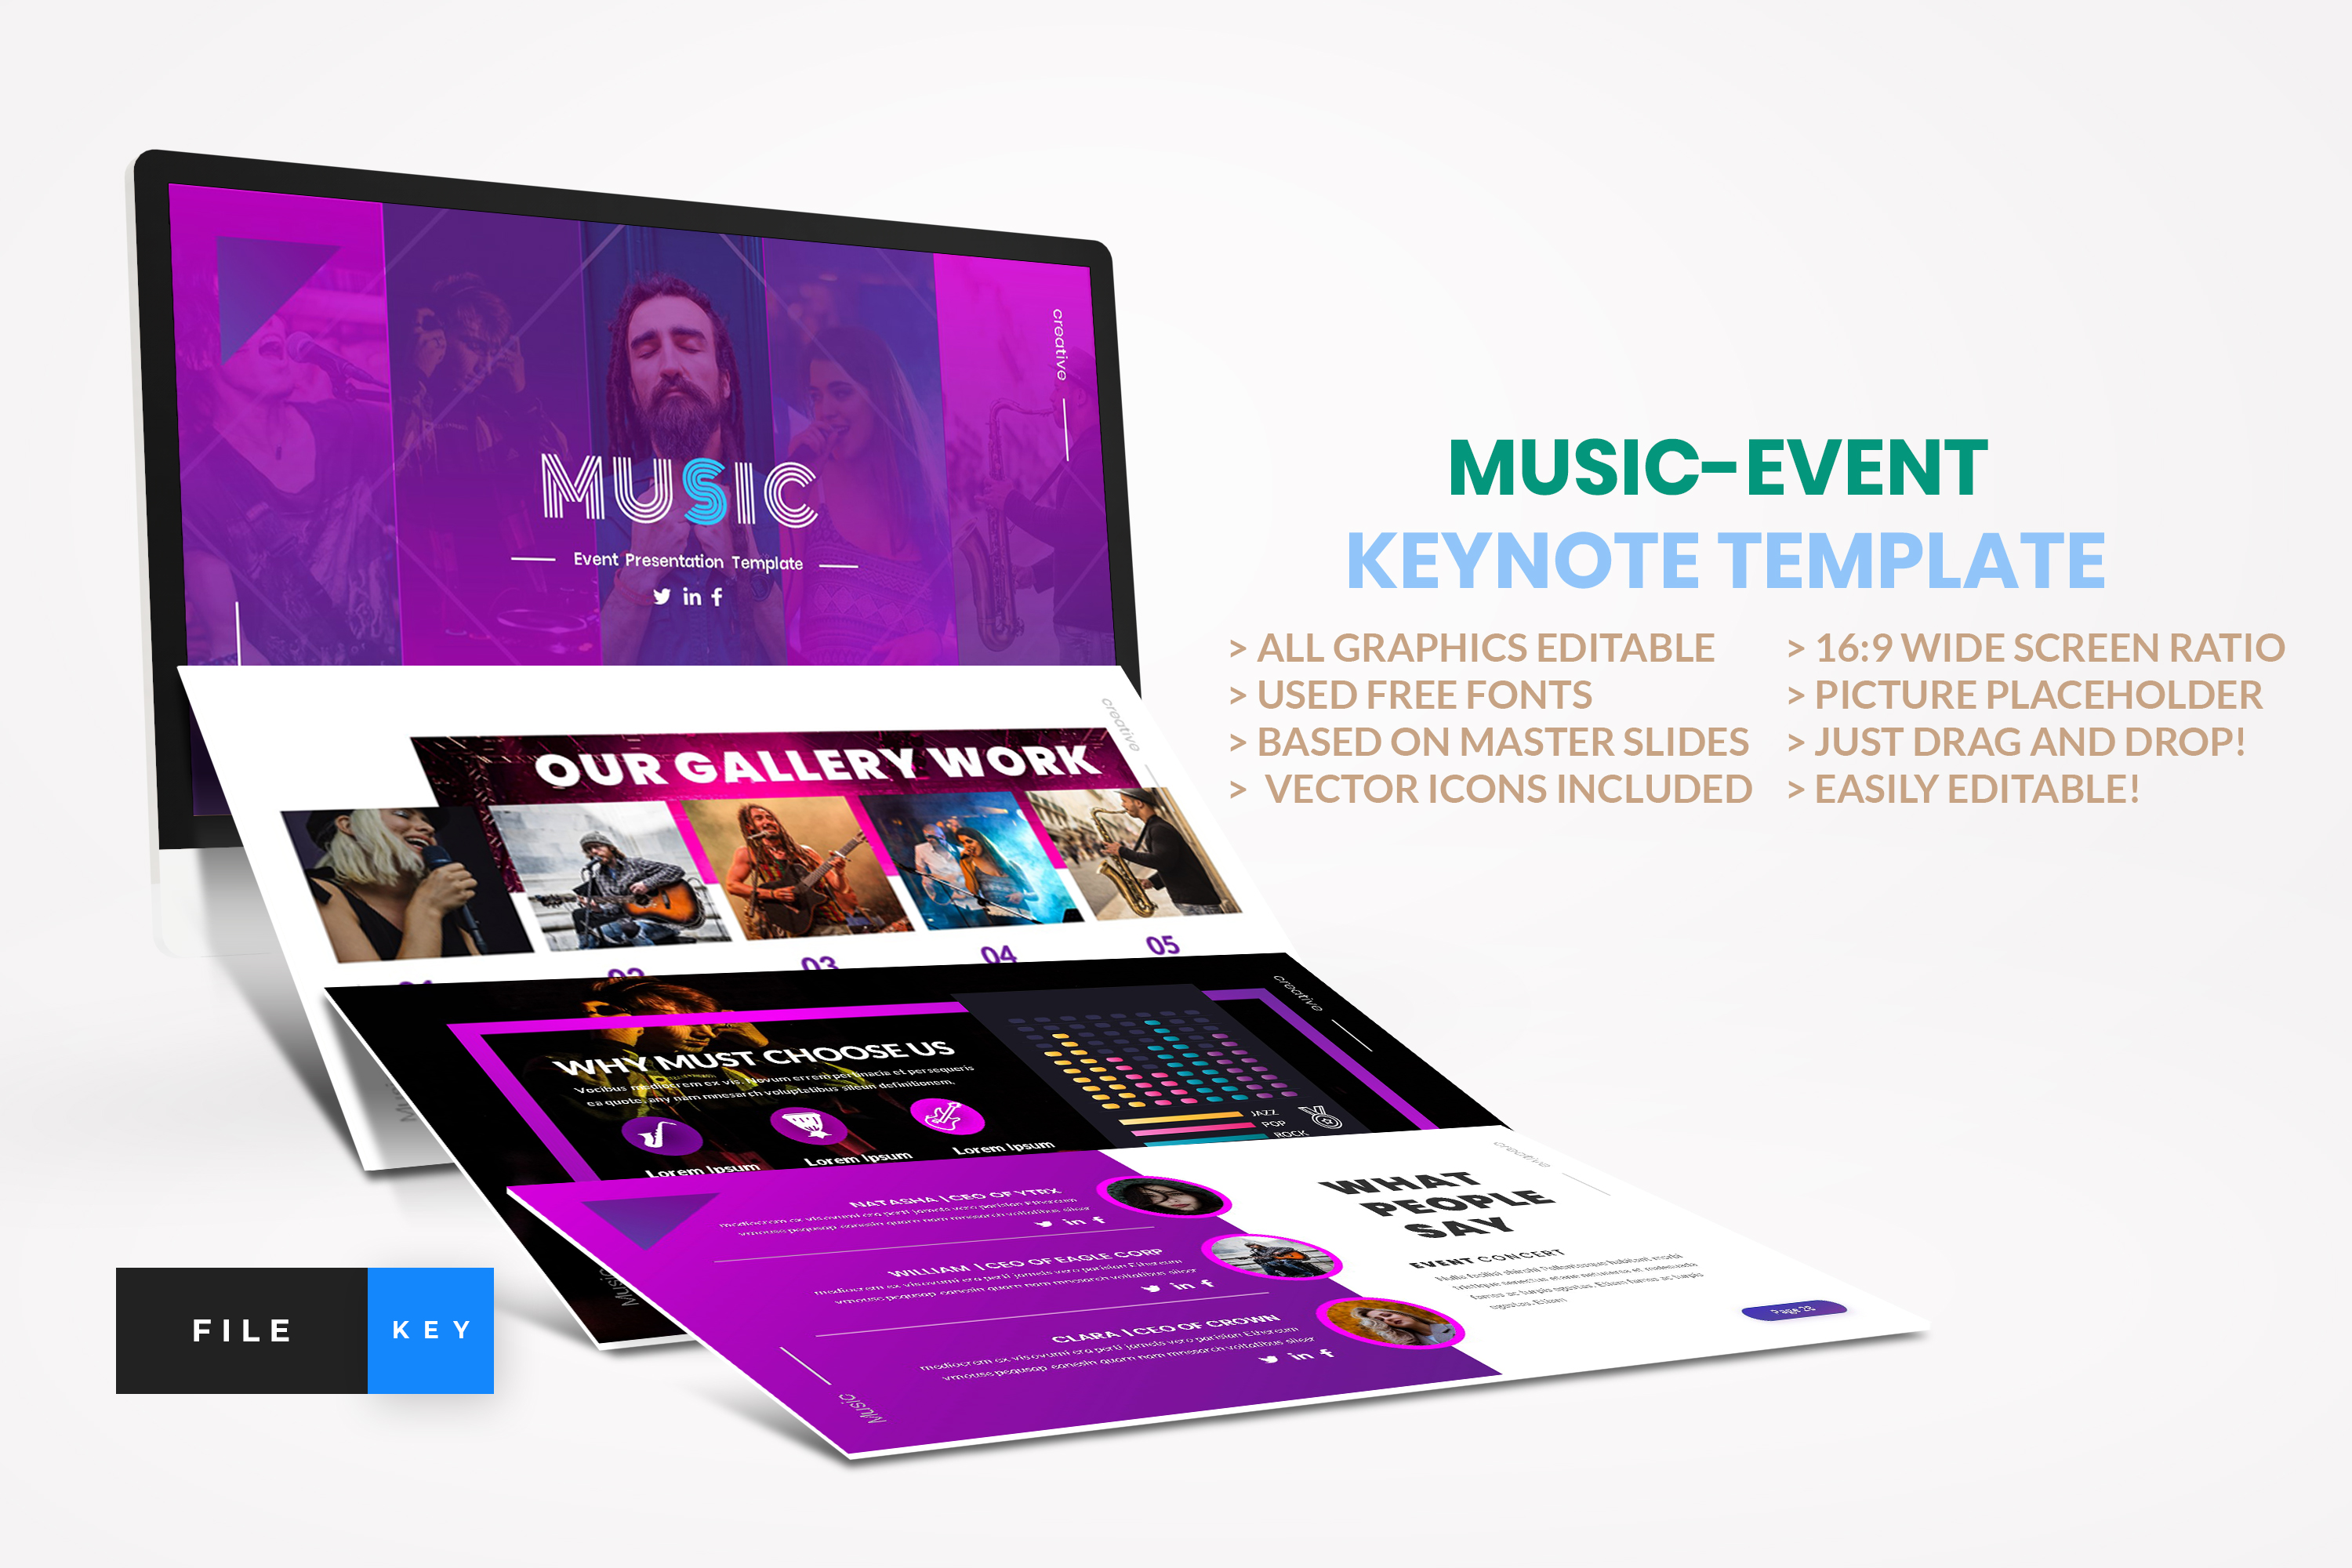 Music - Event Keynote Template example image 1